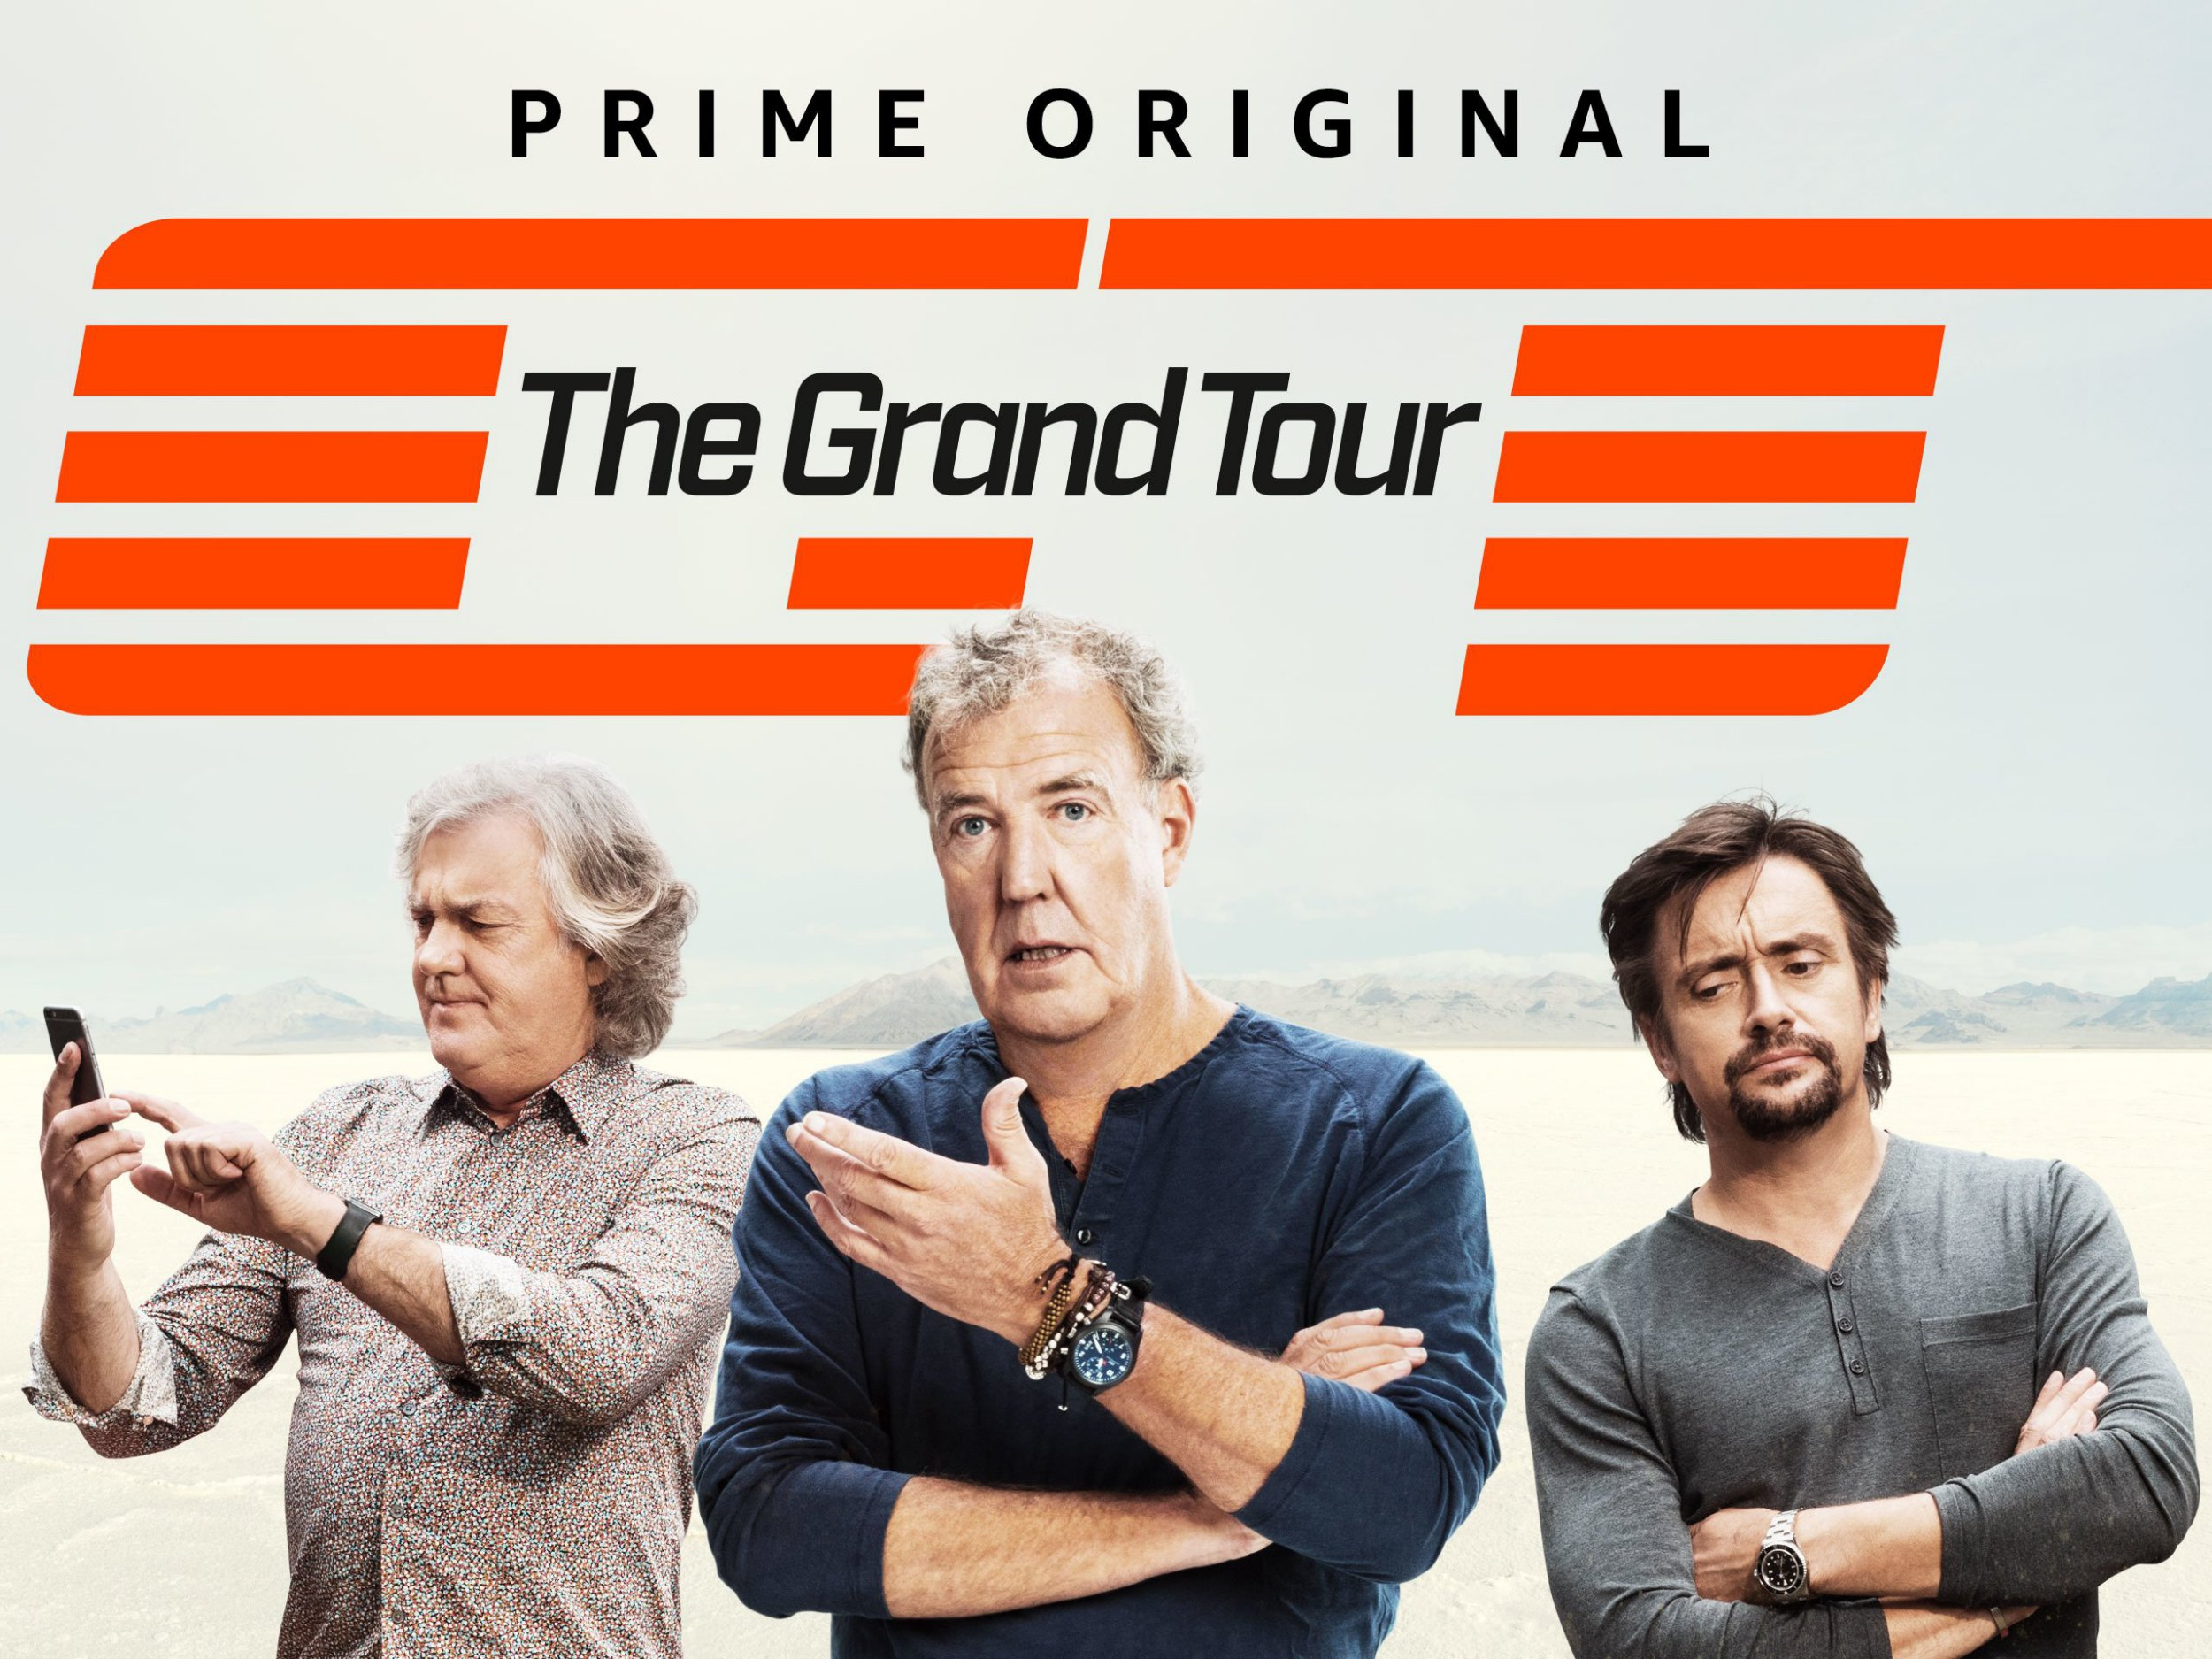 When is The Grand Tour season 4 release date?